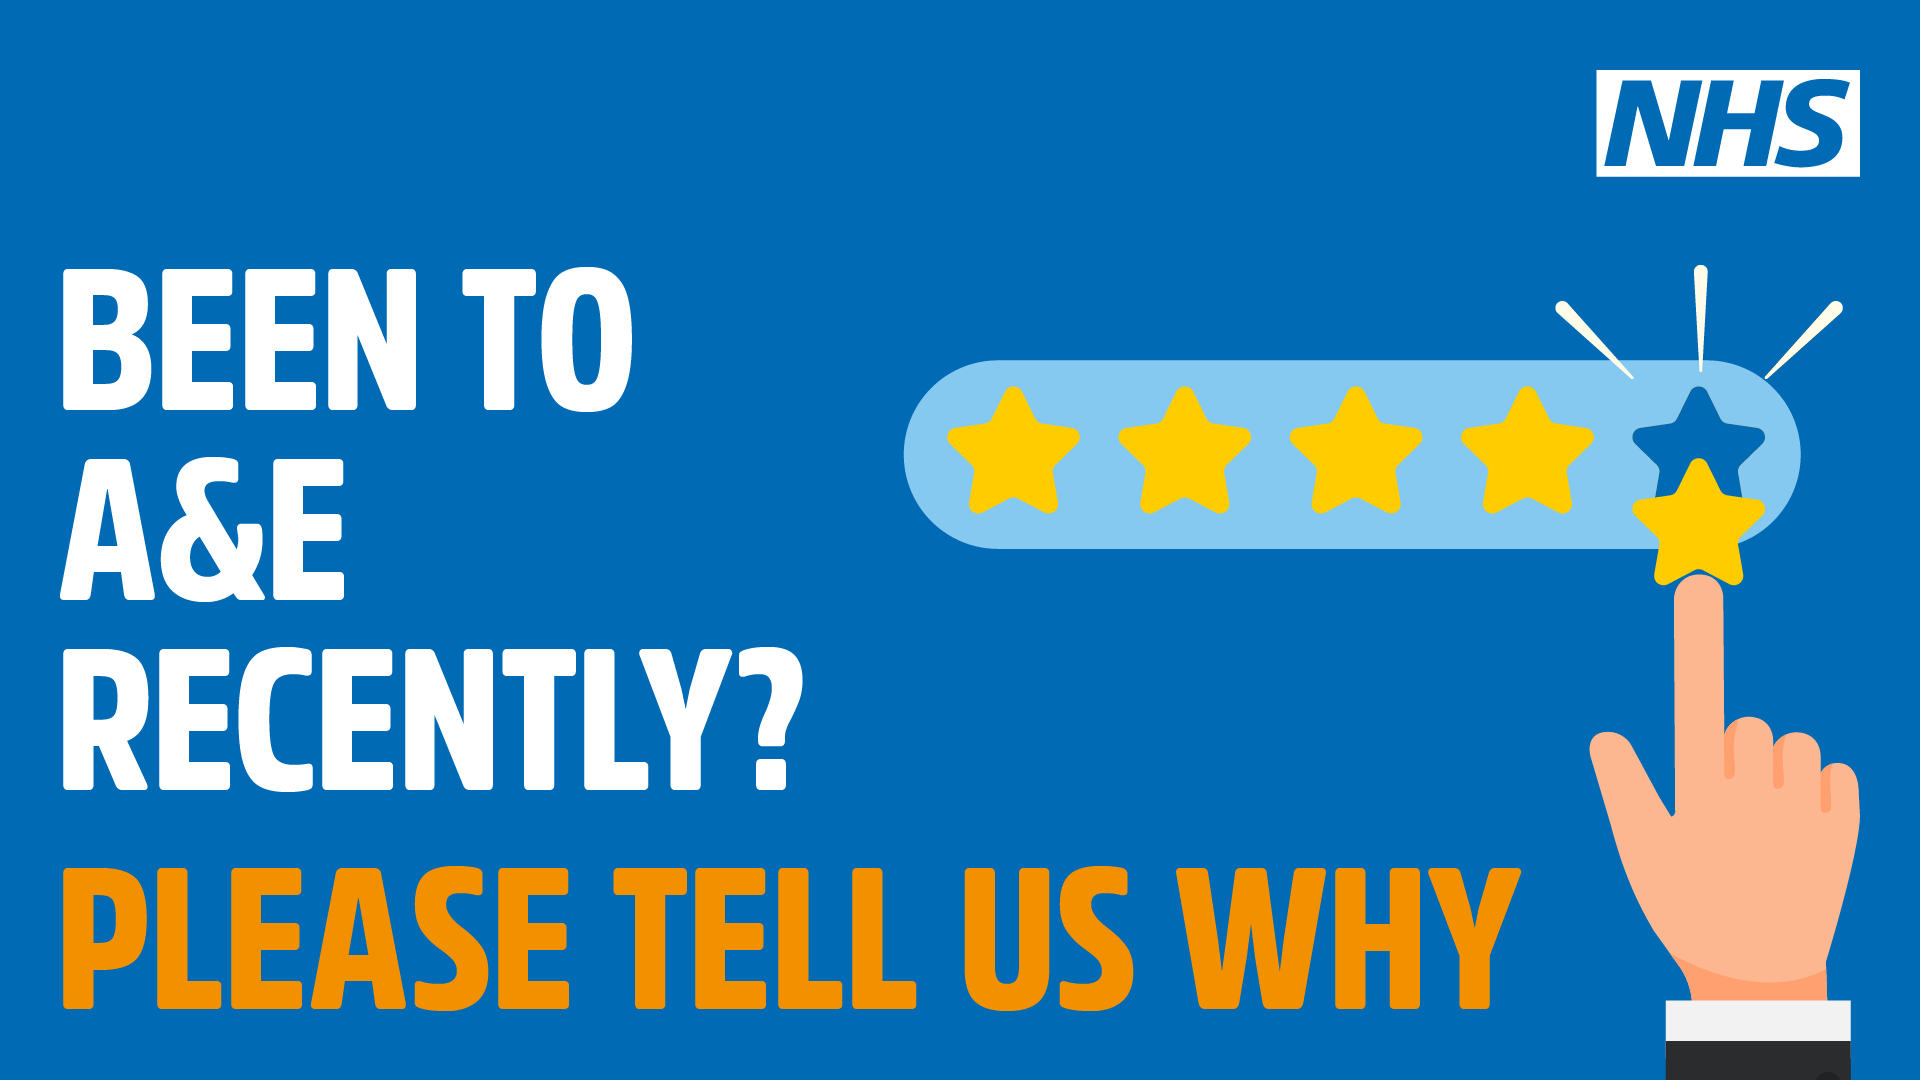 Been to A&E recently? Please tell us why